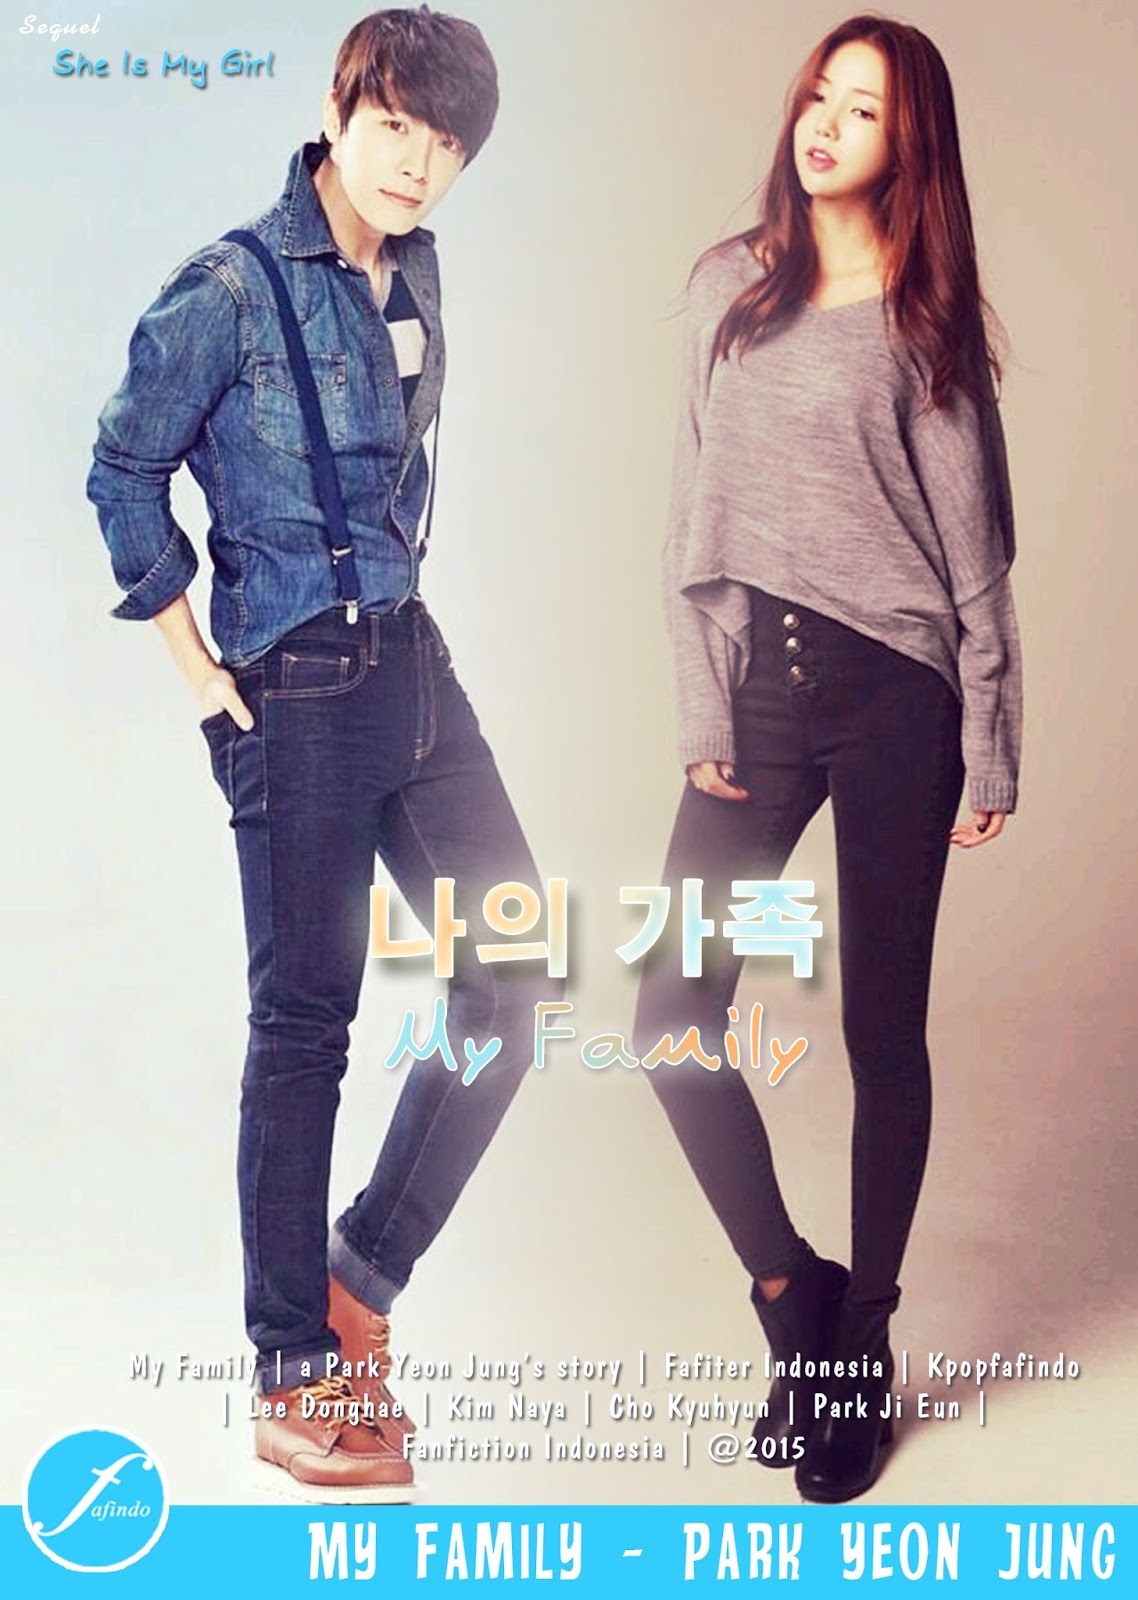 KpopFaFindo: My Family (Sequel She Is My Girl) - Park Yeon Jung